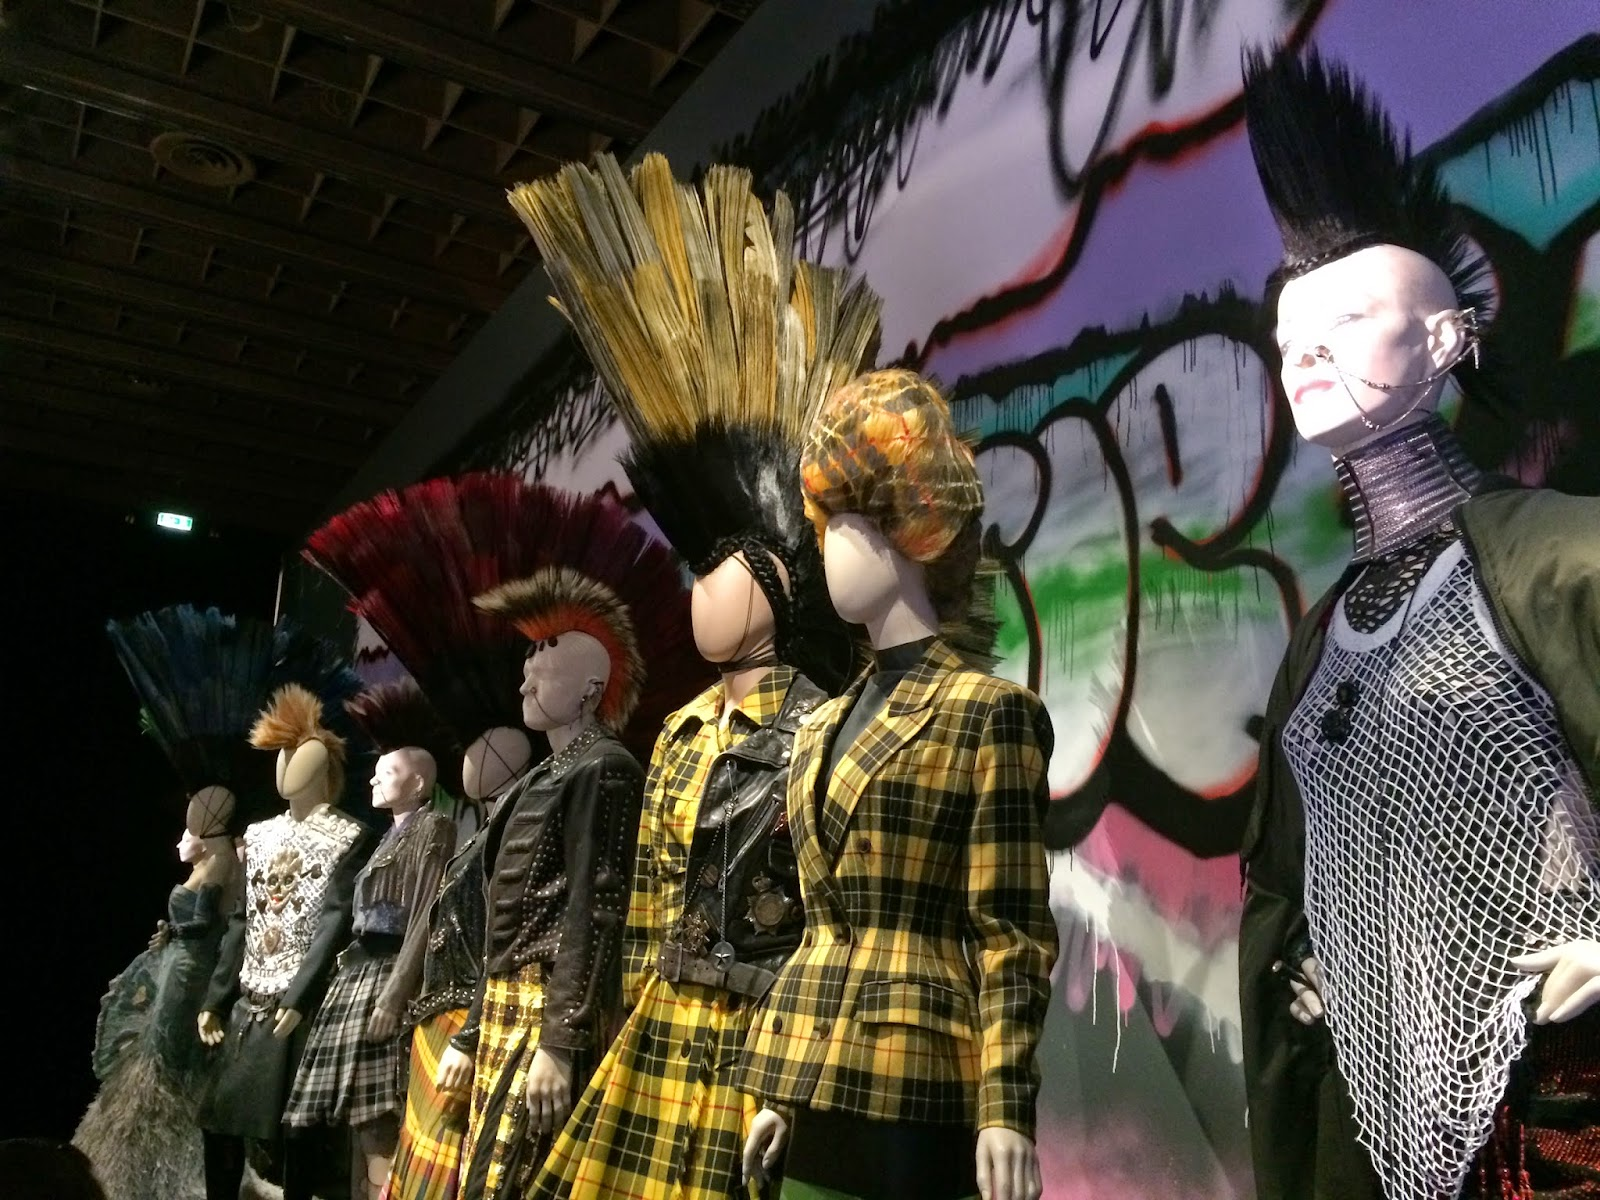 Punk inspired clothing by Jean Paul Gaultier, Le Grand Palais, Paris